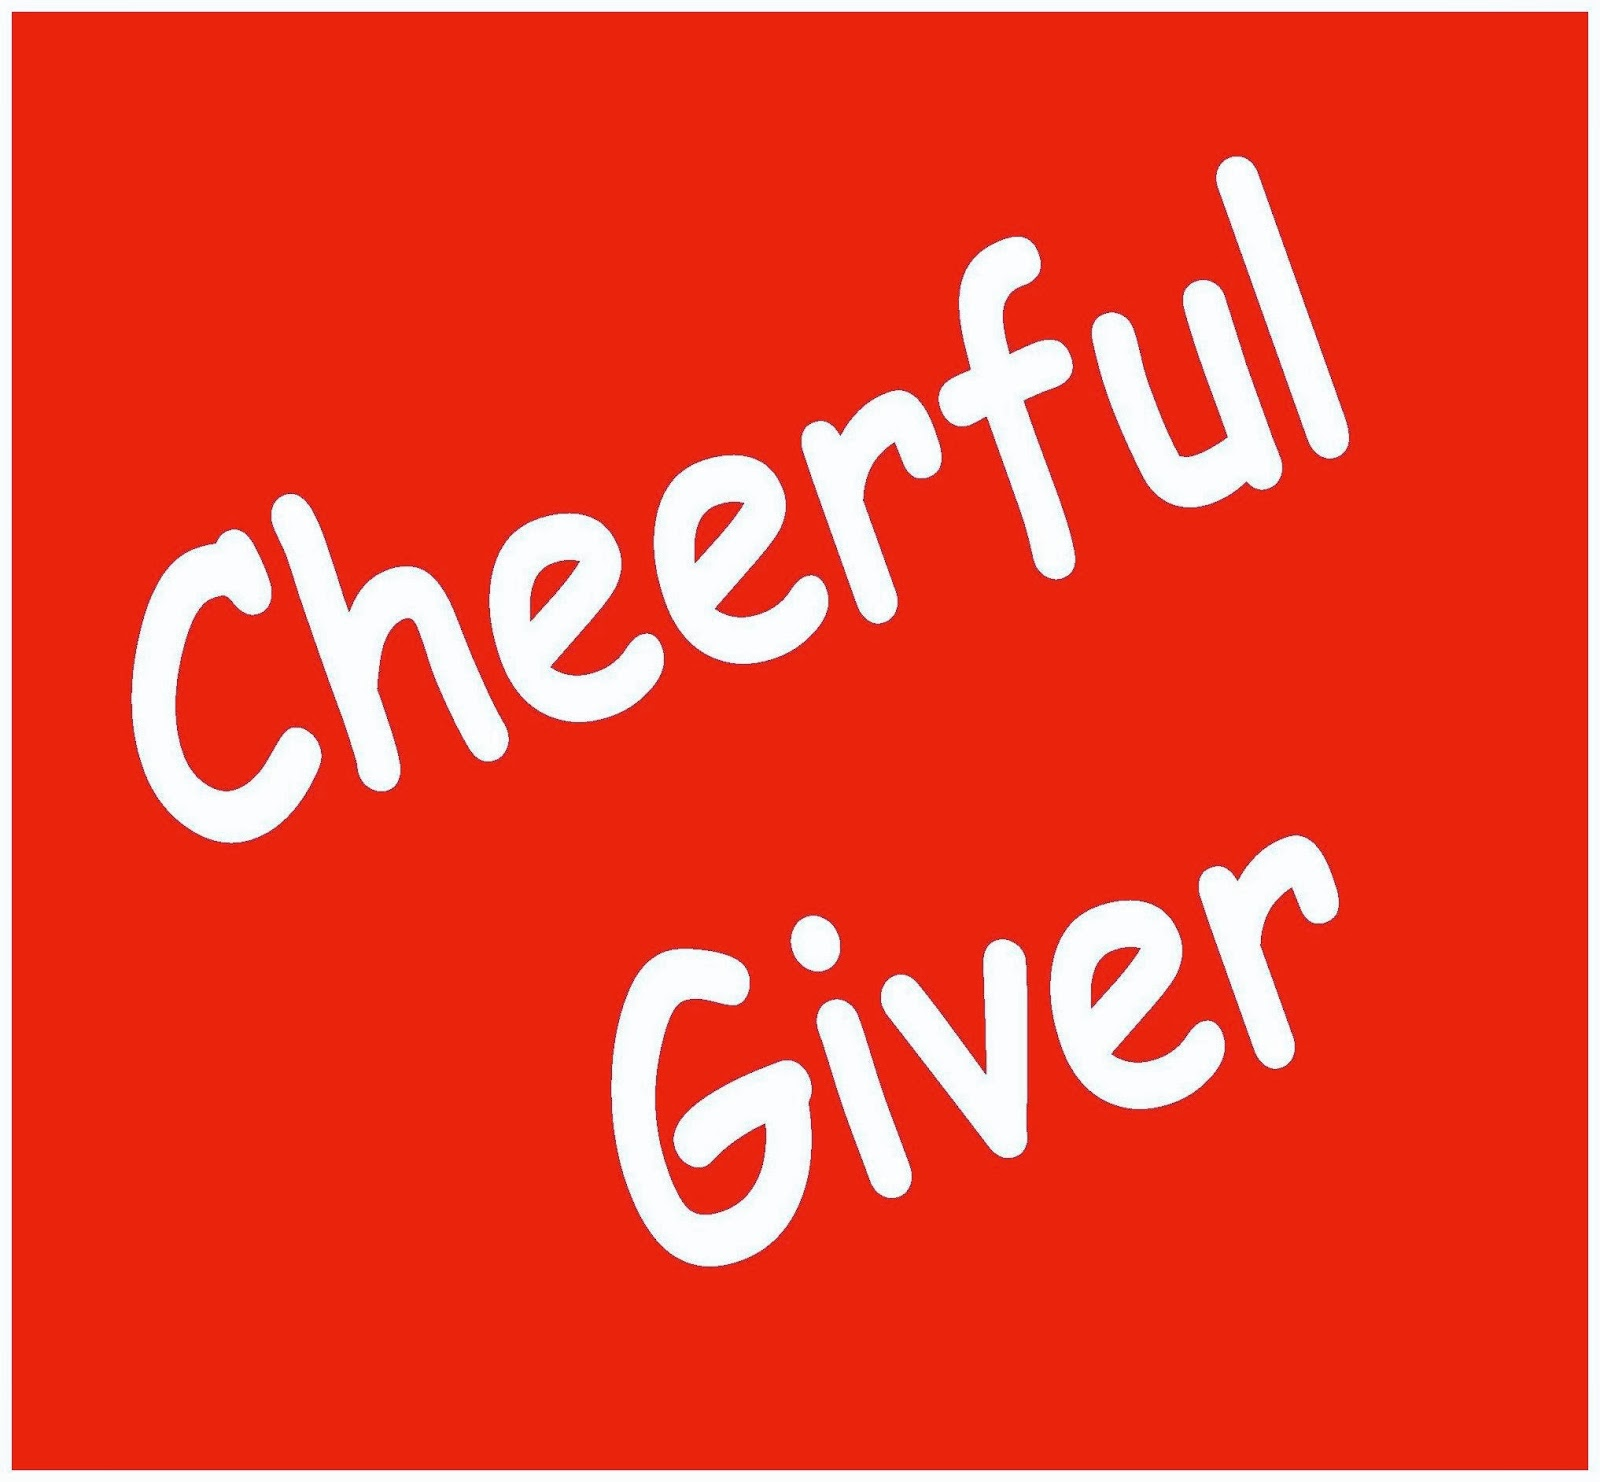 Cheerful giver banner